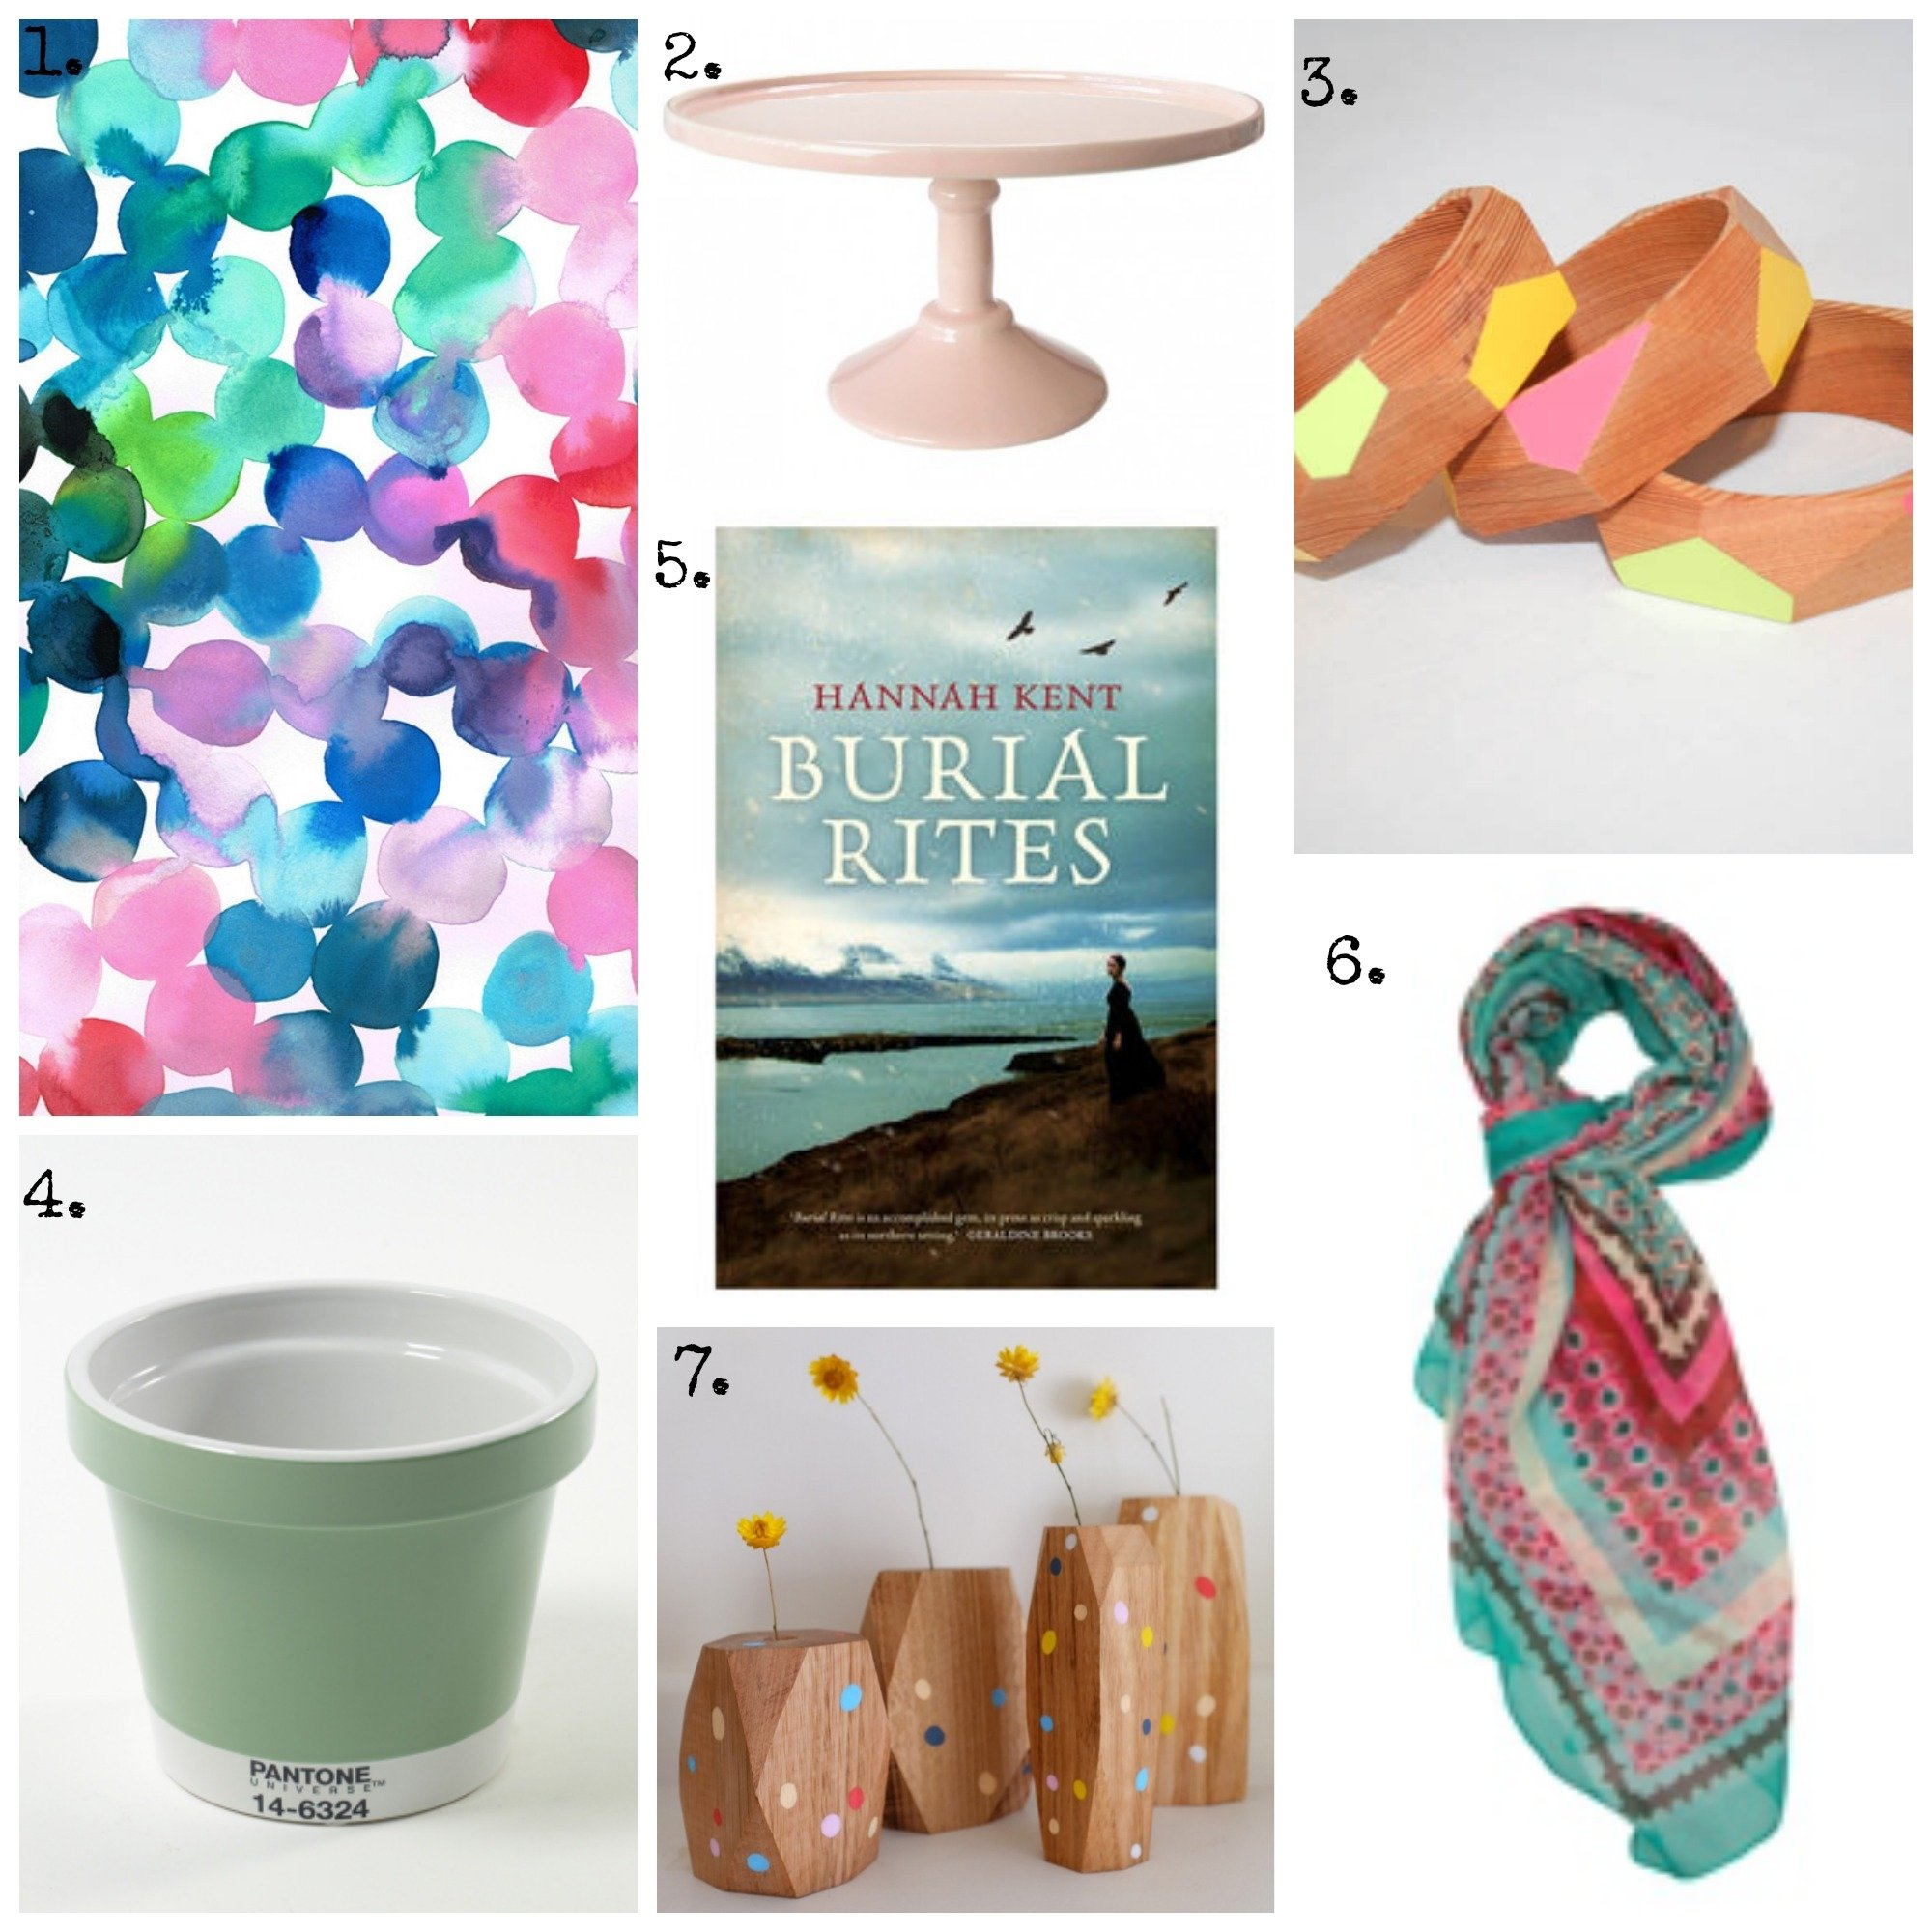 10 Lovely Birthday Gift Ideas For Her the top 7 gorgeous gift ideas for women style shenanigans 9 2020